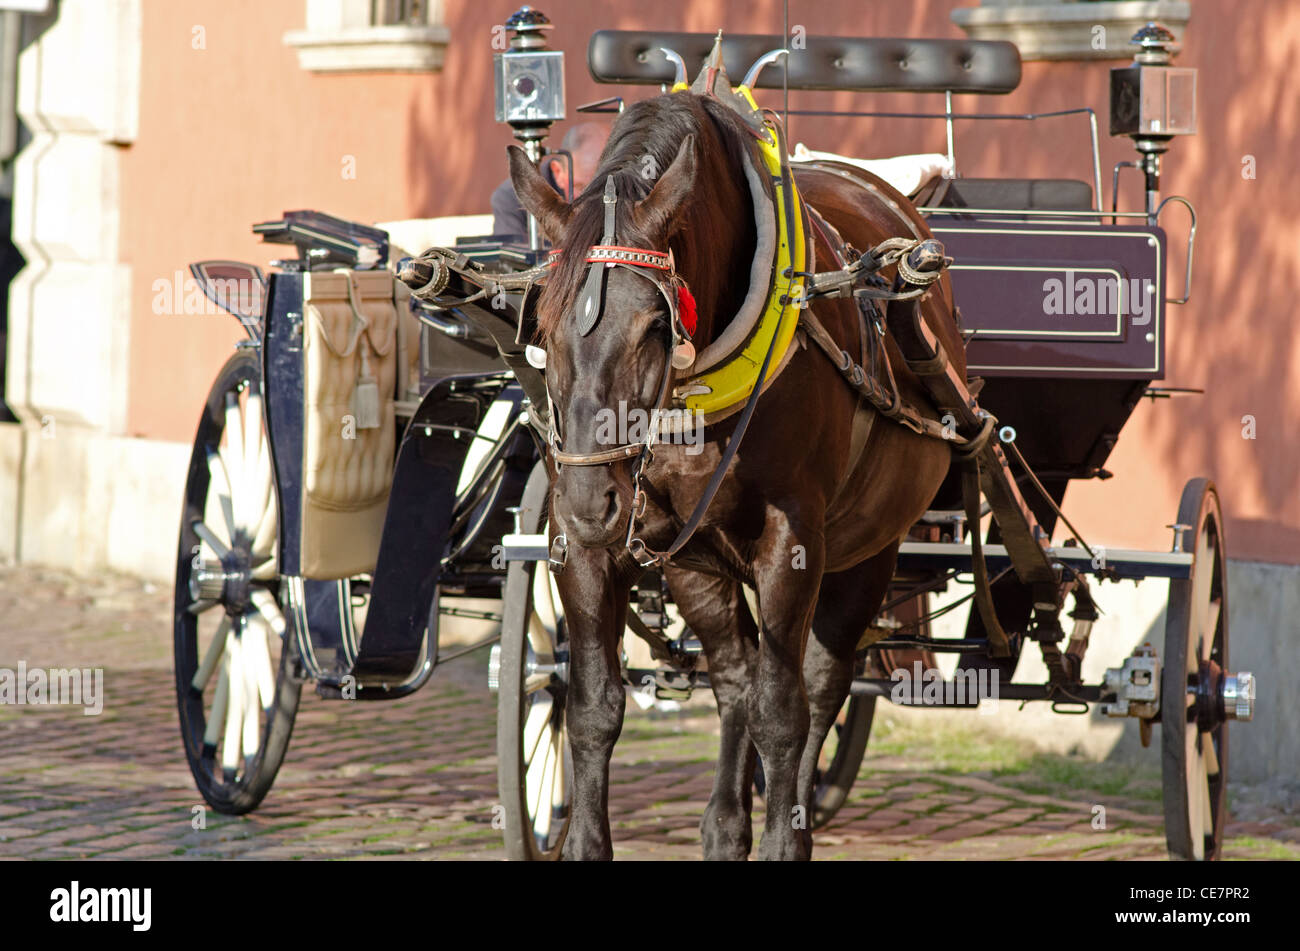 Horse and carriage in Warsaw Old Town, Poland - Stock Image